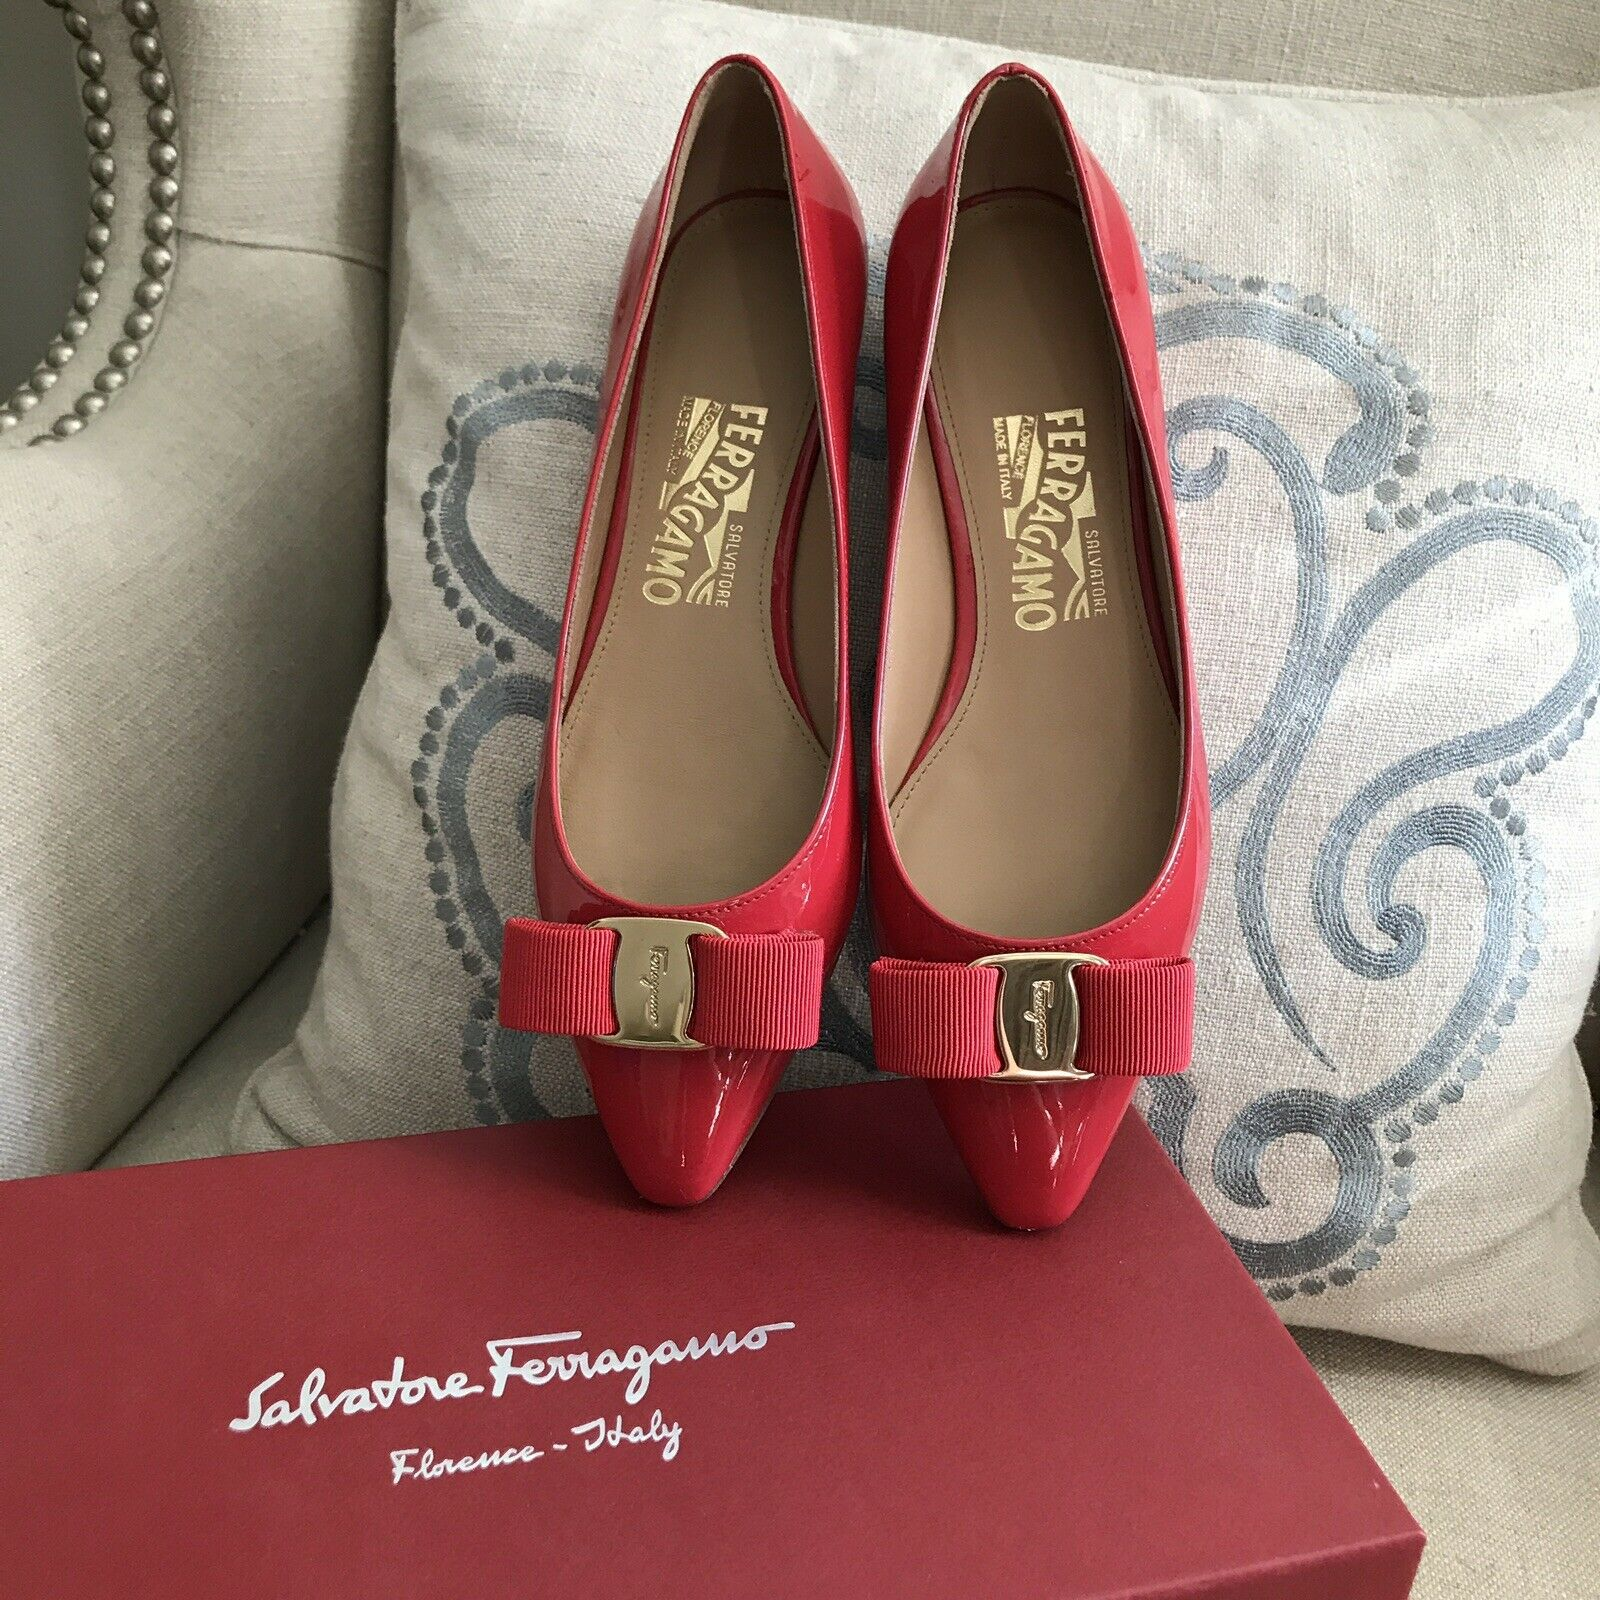 NIB Auth Salvatore Ferragamo Emy Red Leather Womens Flats shoes Size 5.5 525